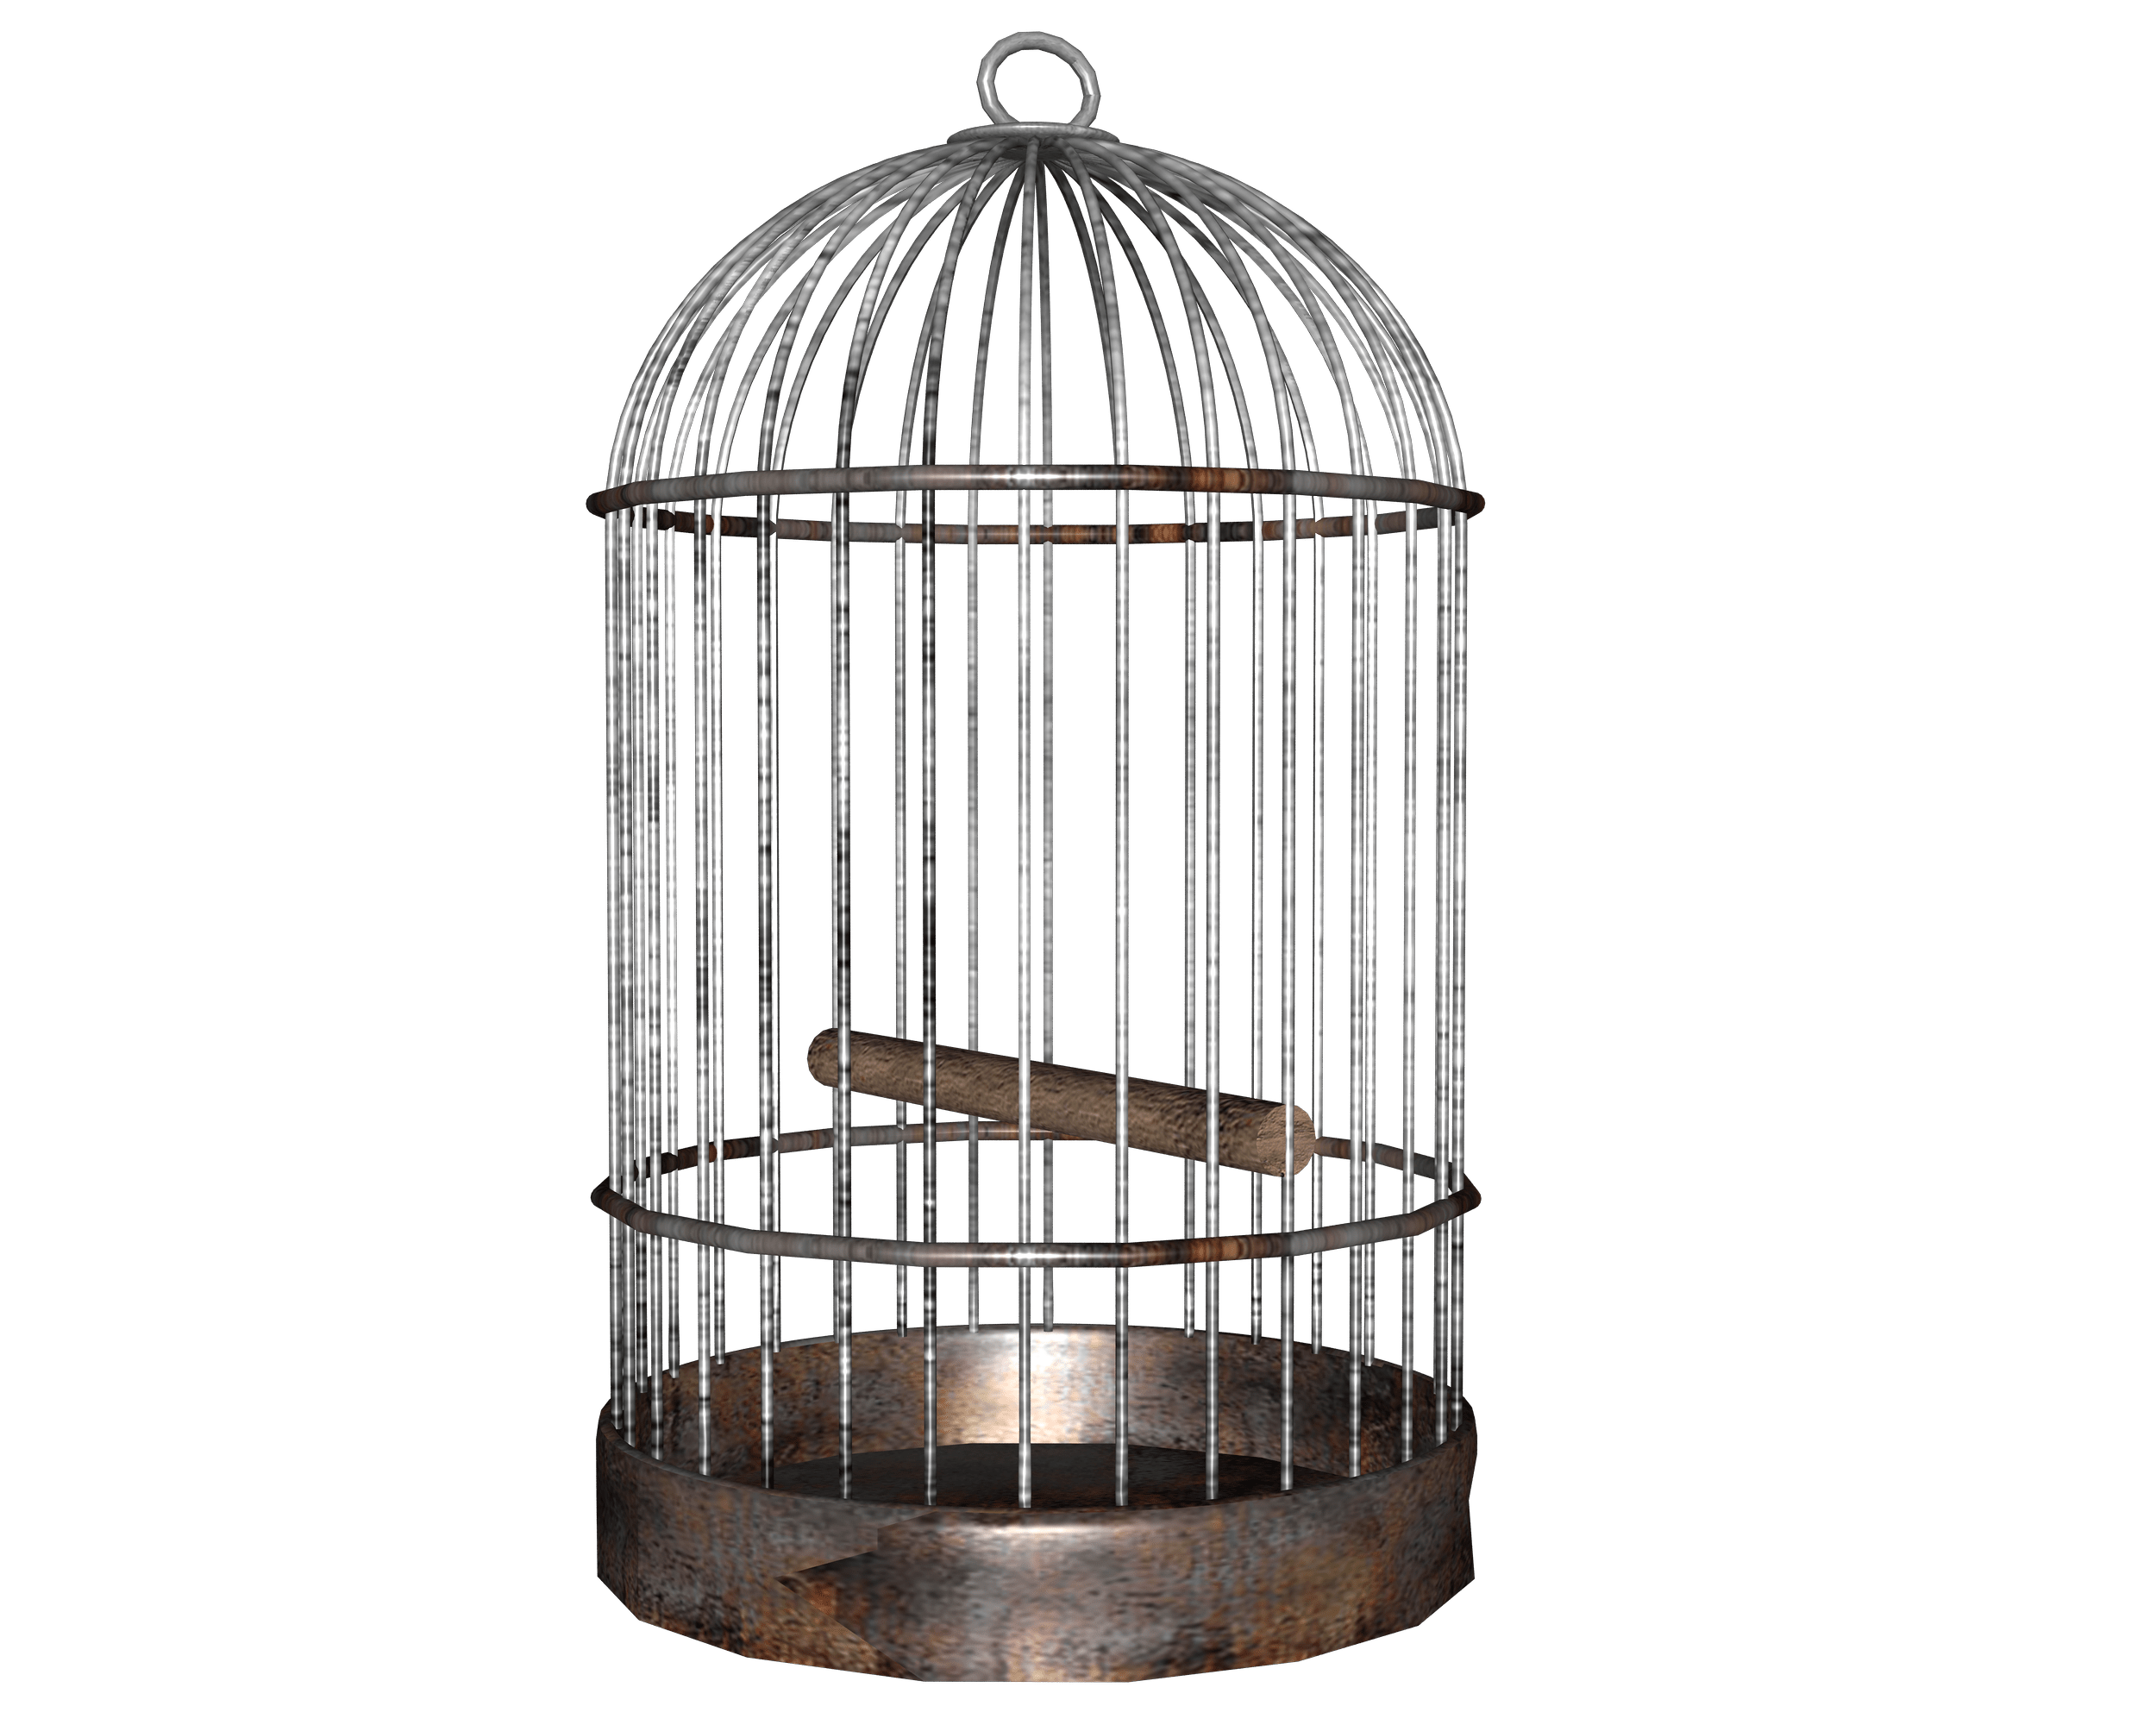 Bird png image purepng. Transparent cage picture black and white